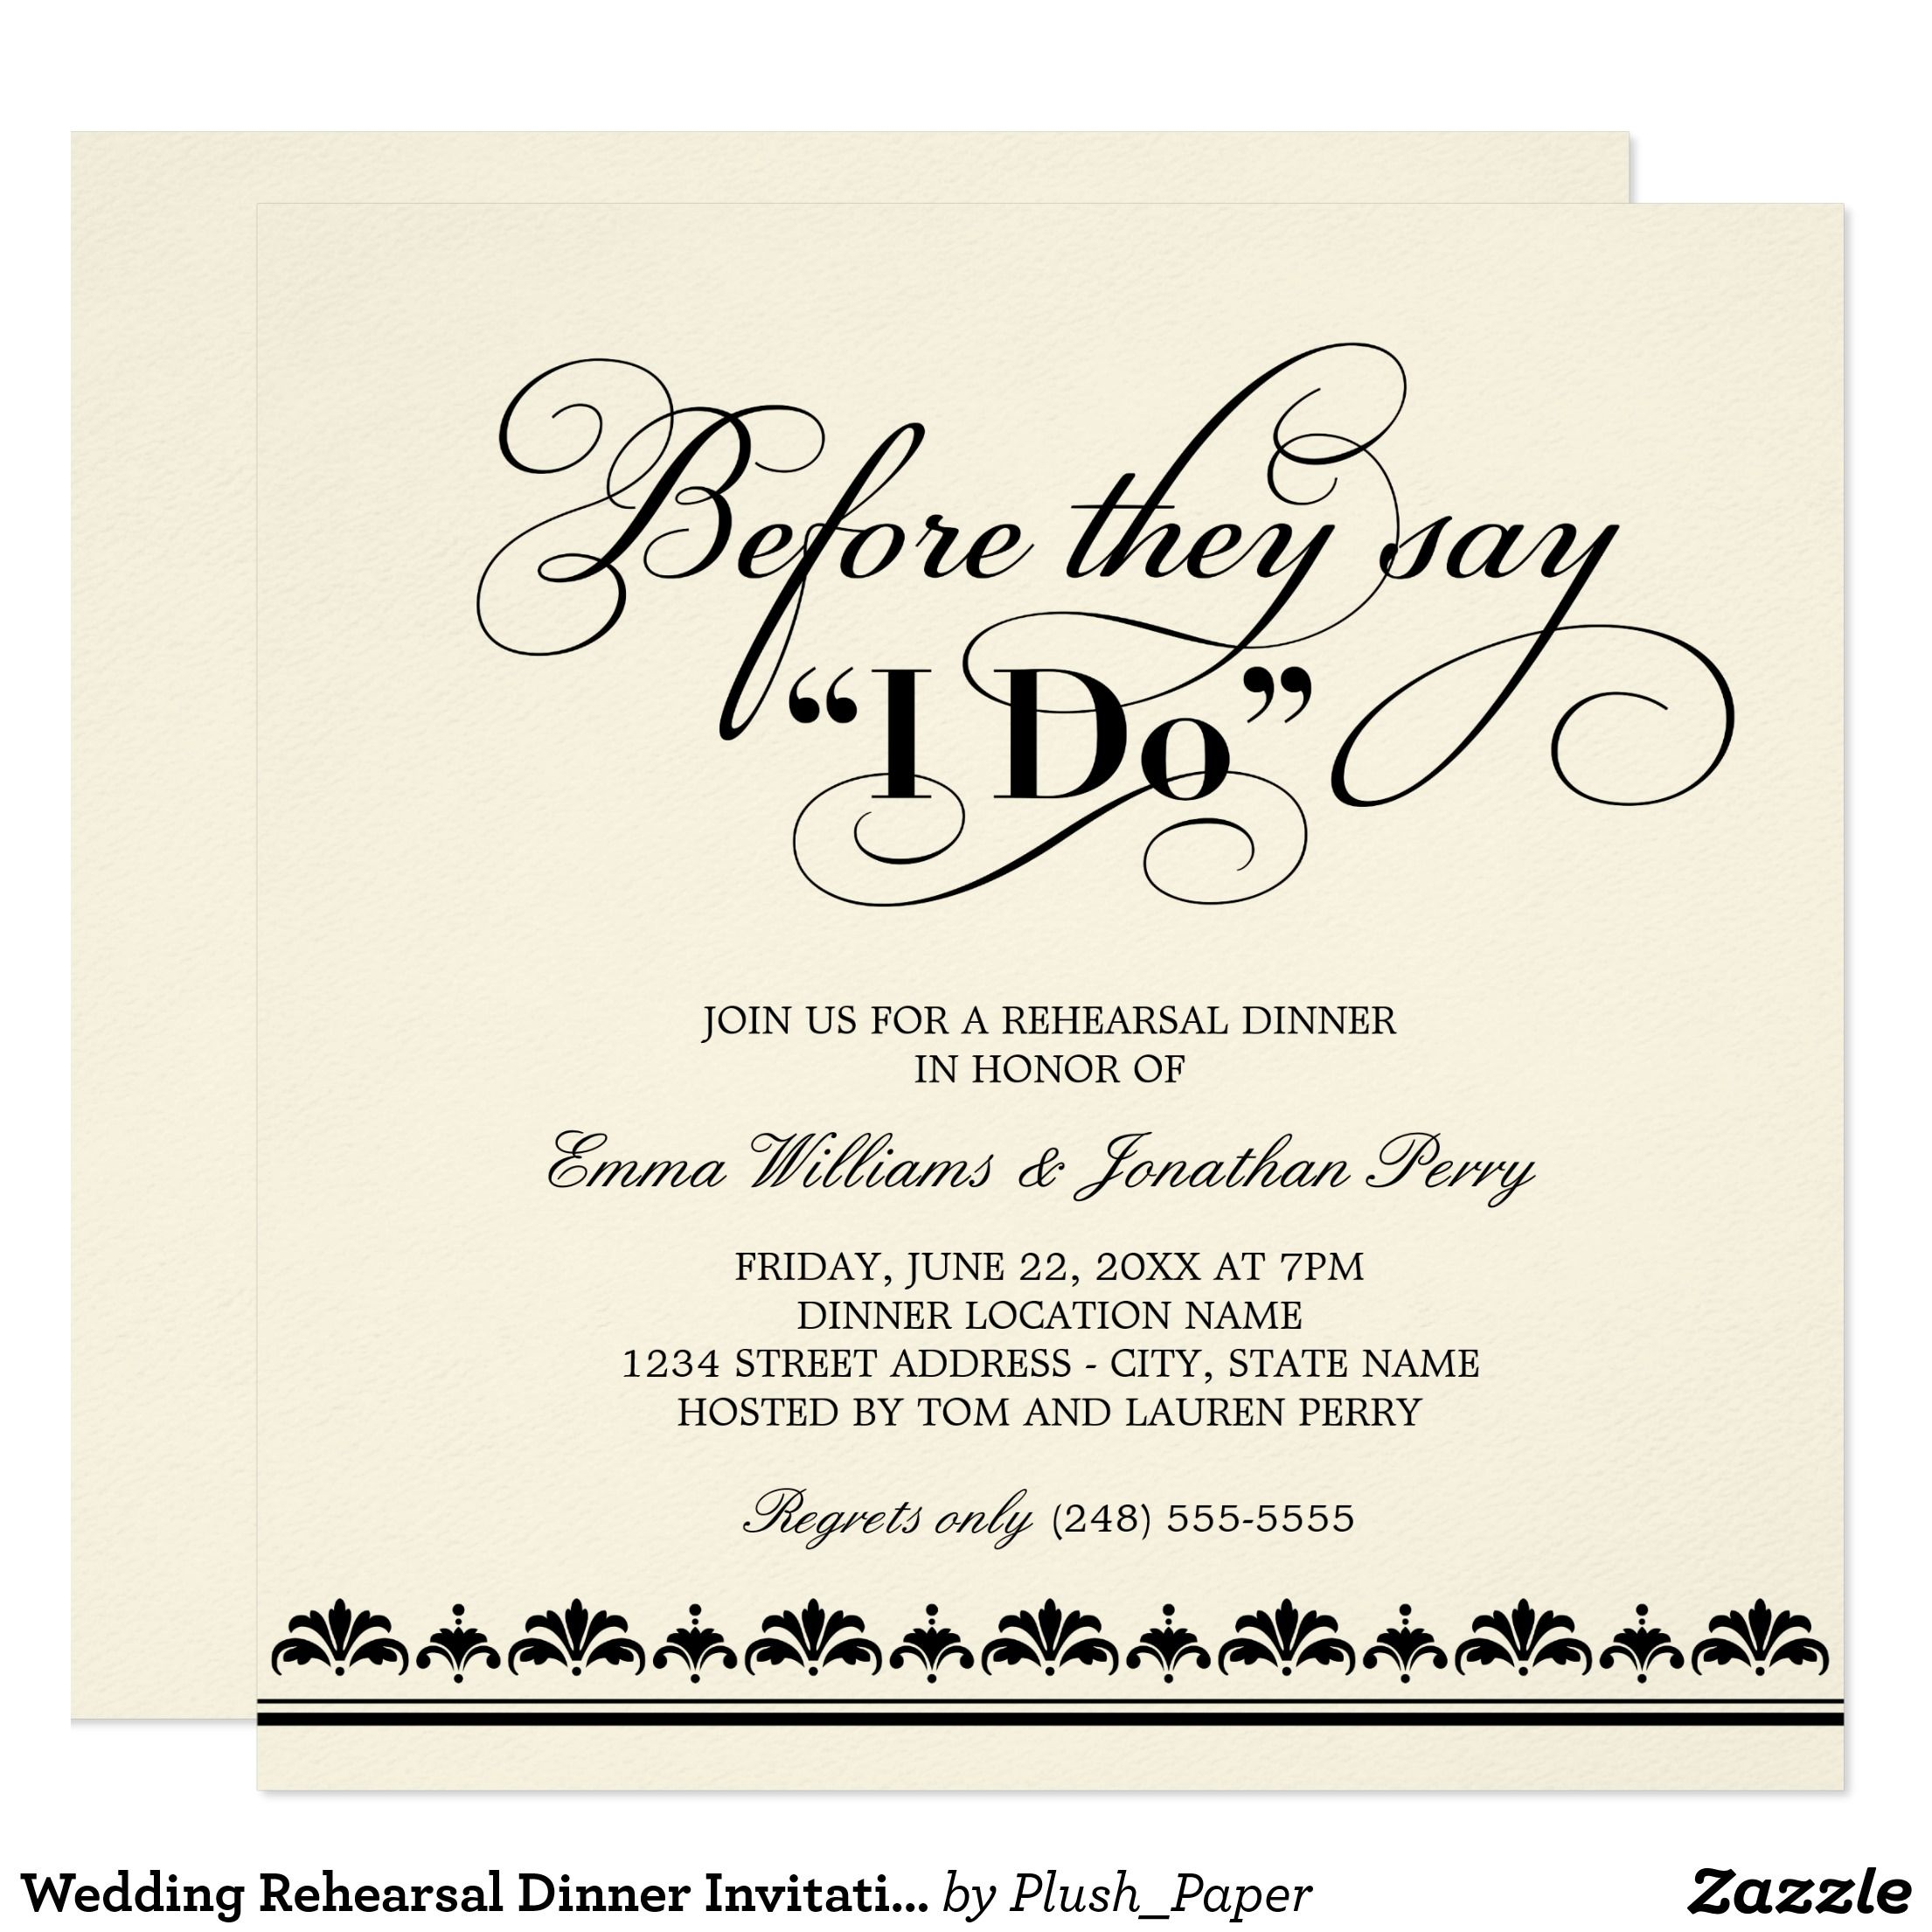 Before They Say I Do Black Vows Rehearsal Dinner Invitation Zazzle Com Couples Wedding Shower Invitations Couple Wedding Shower Rehearsal Dinner Invitations